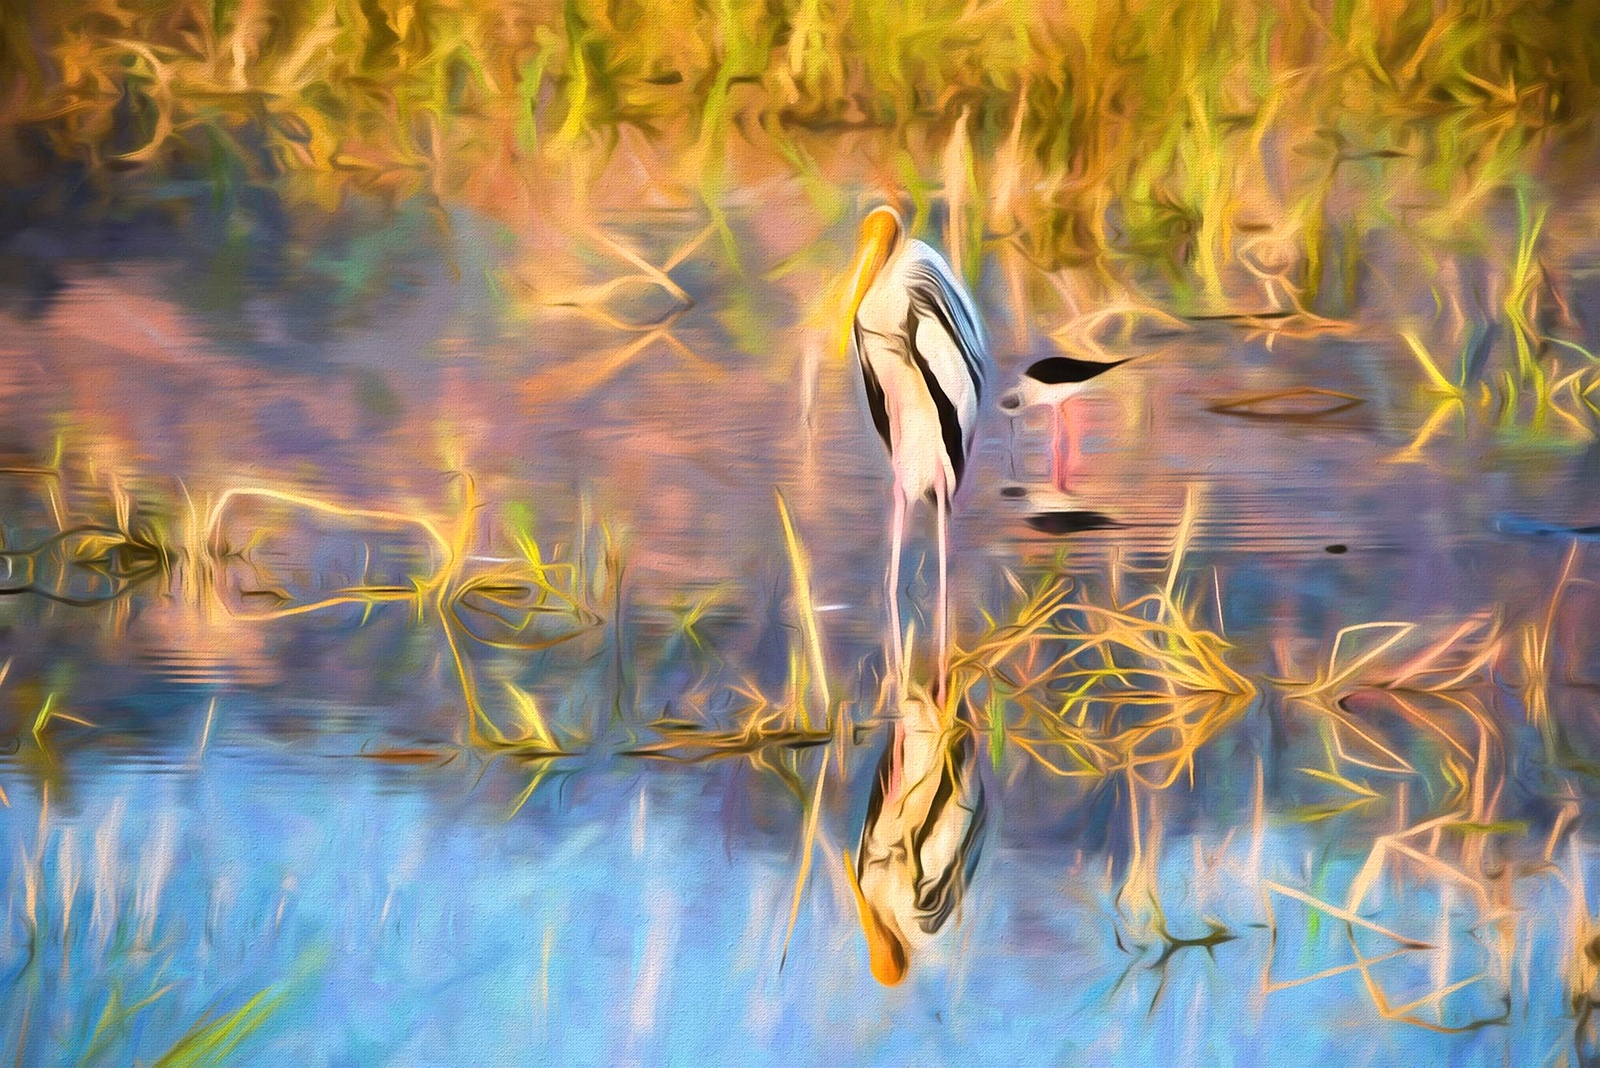 Reflection of a stork